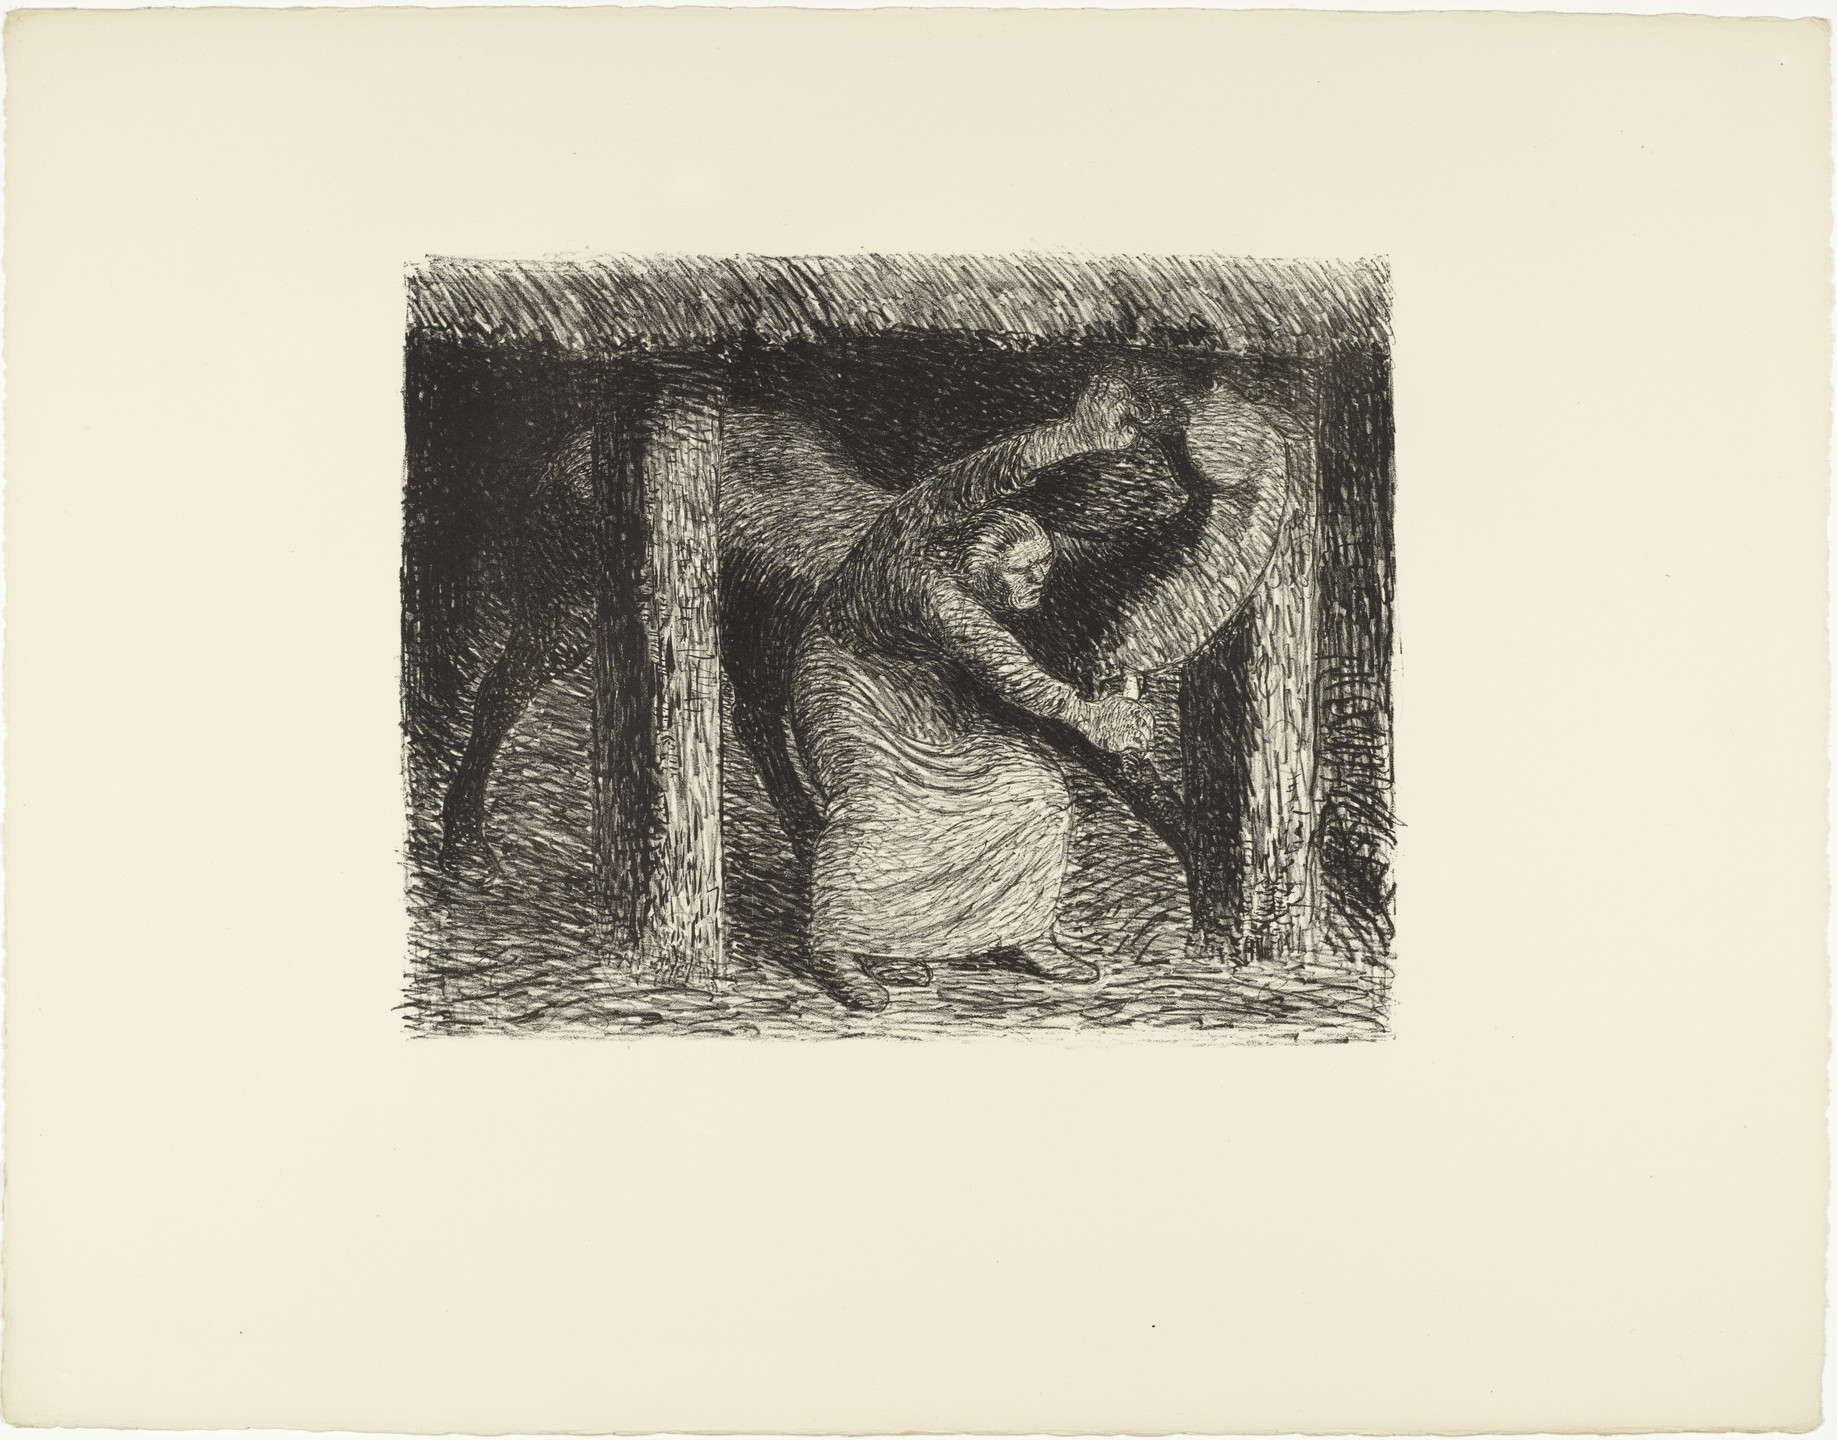 Ernst Barlach. The Murderess (Die Mörderin) The Dead Day (Der tote Tag). (1910-11, published 1912)